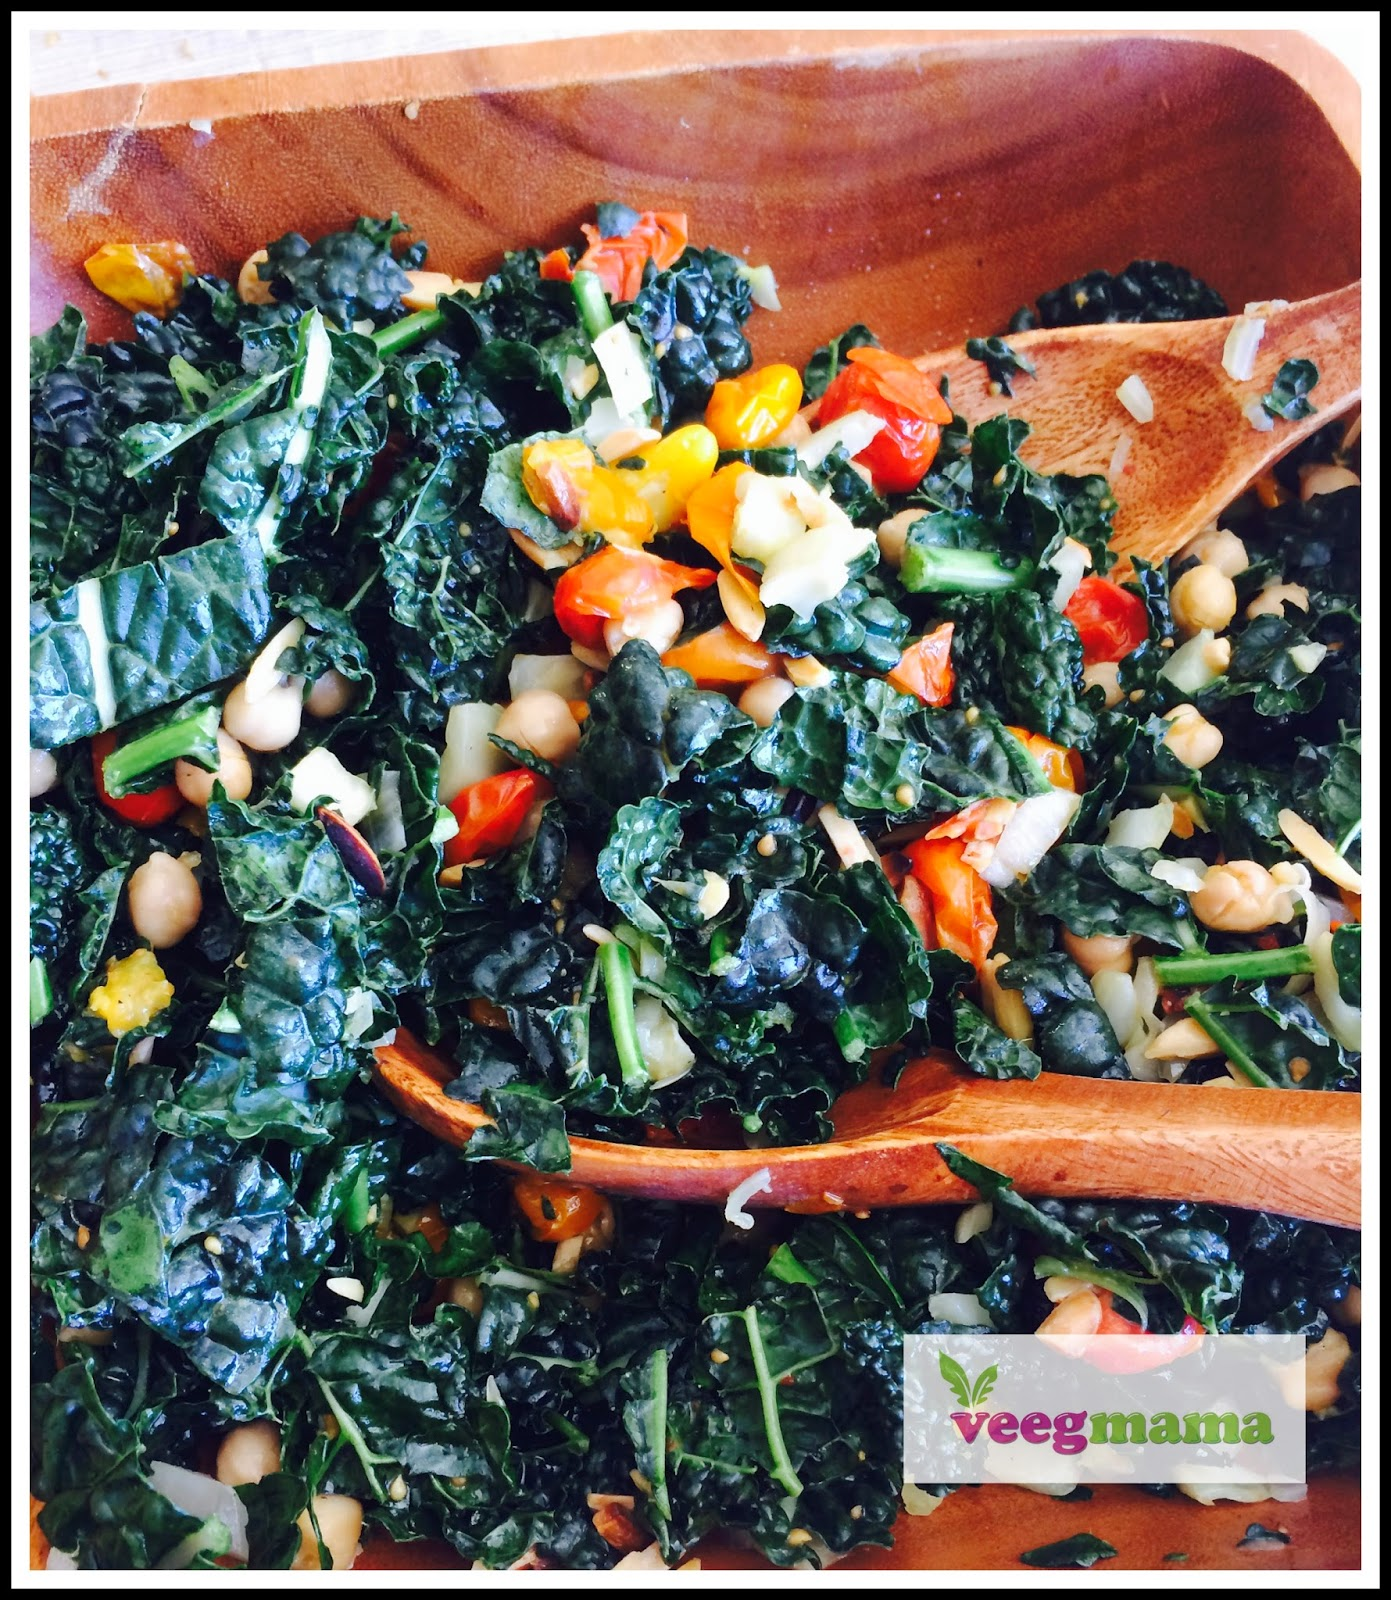 VeegMama's Recipe for Kale Salad with Roasted Fennel and Tomatoes